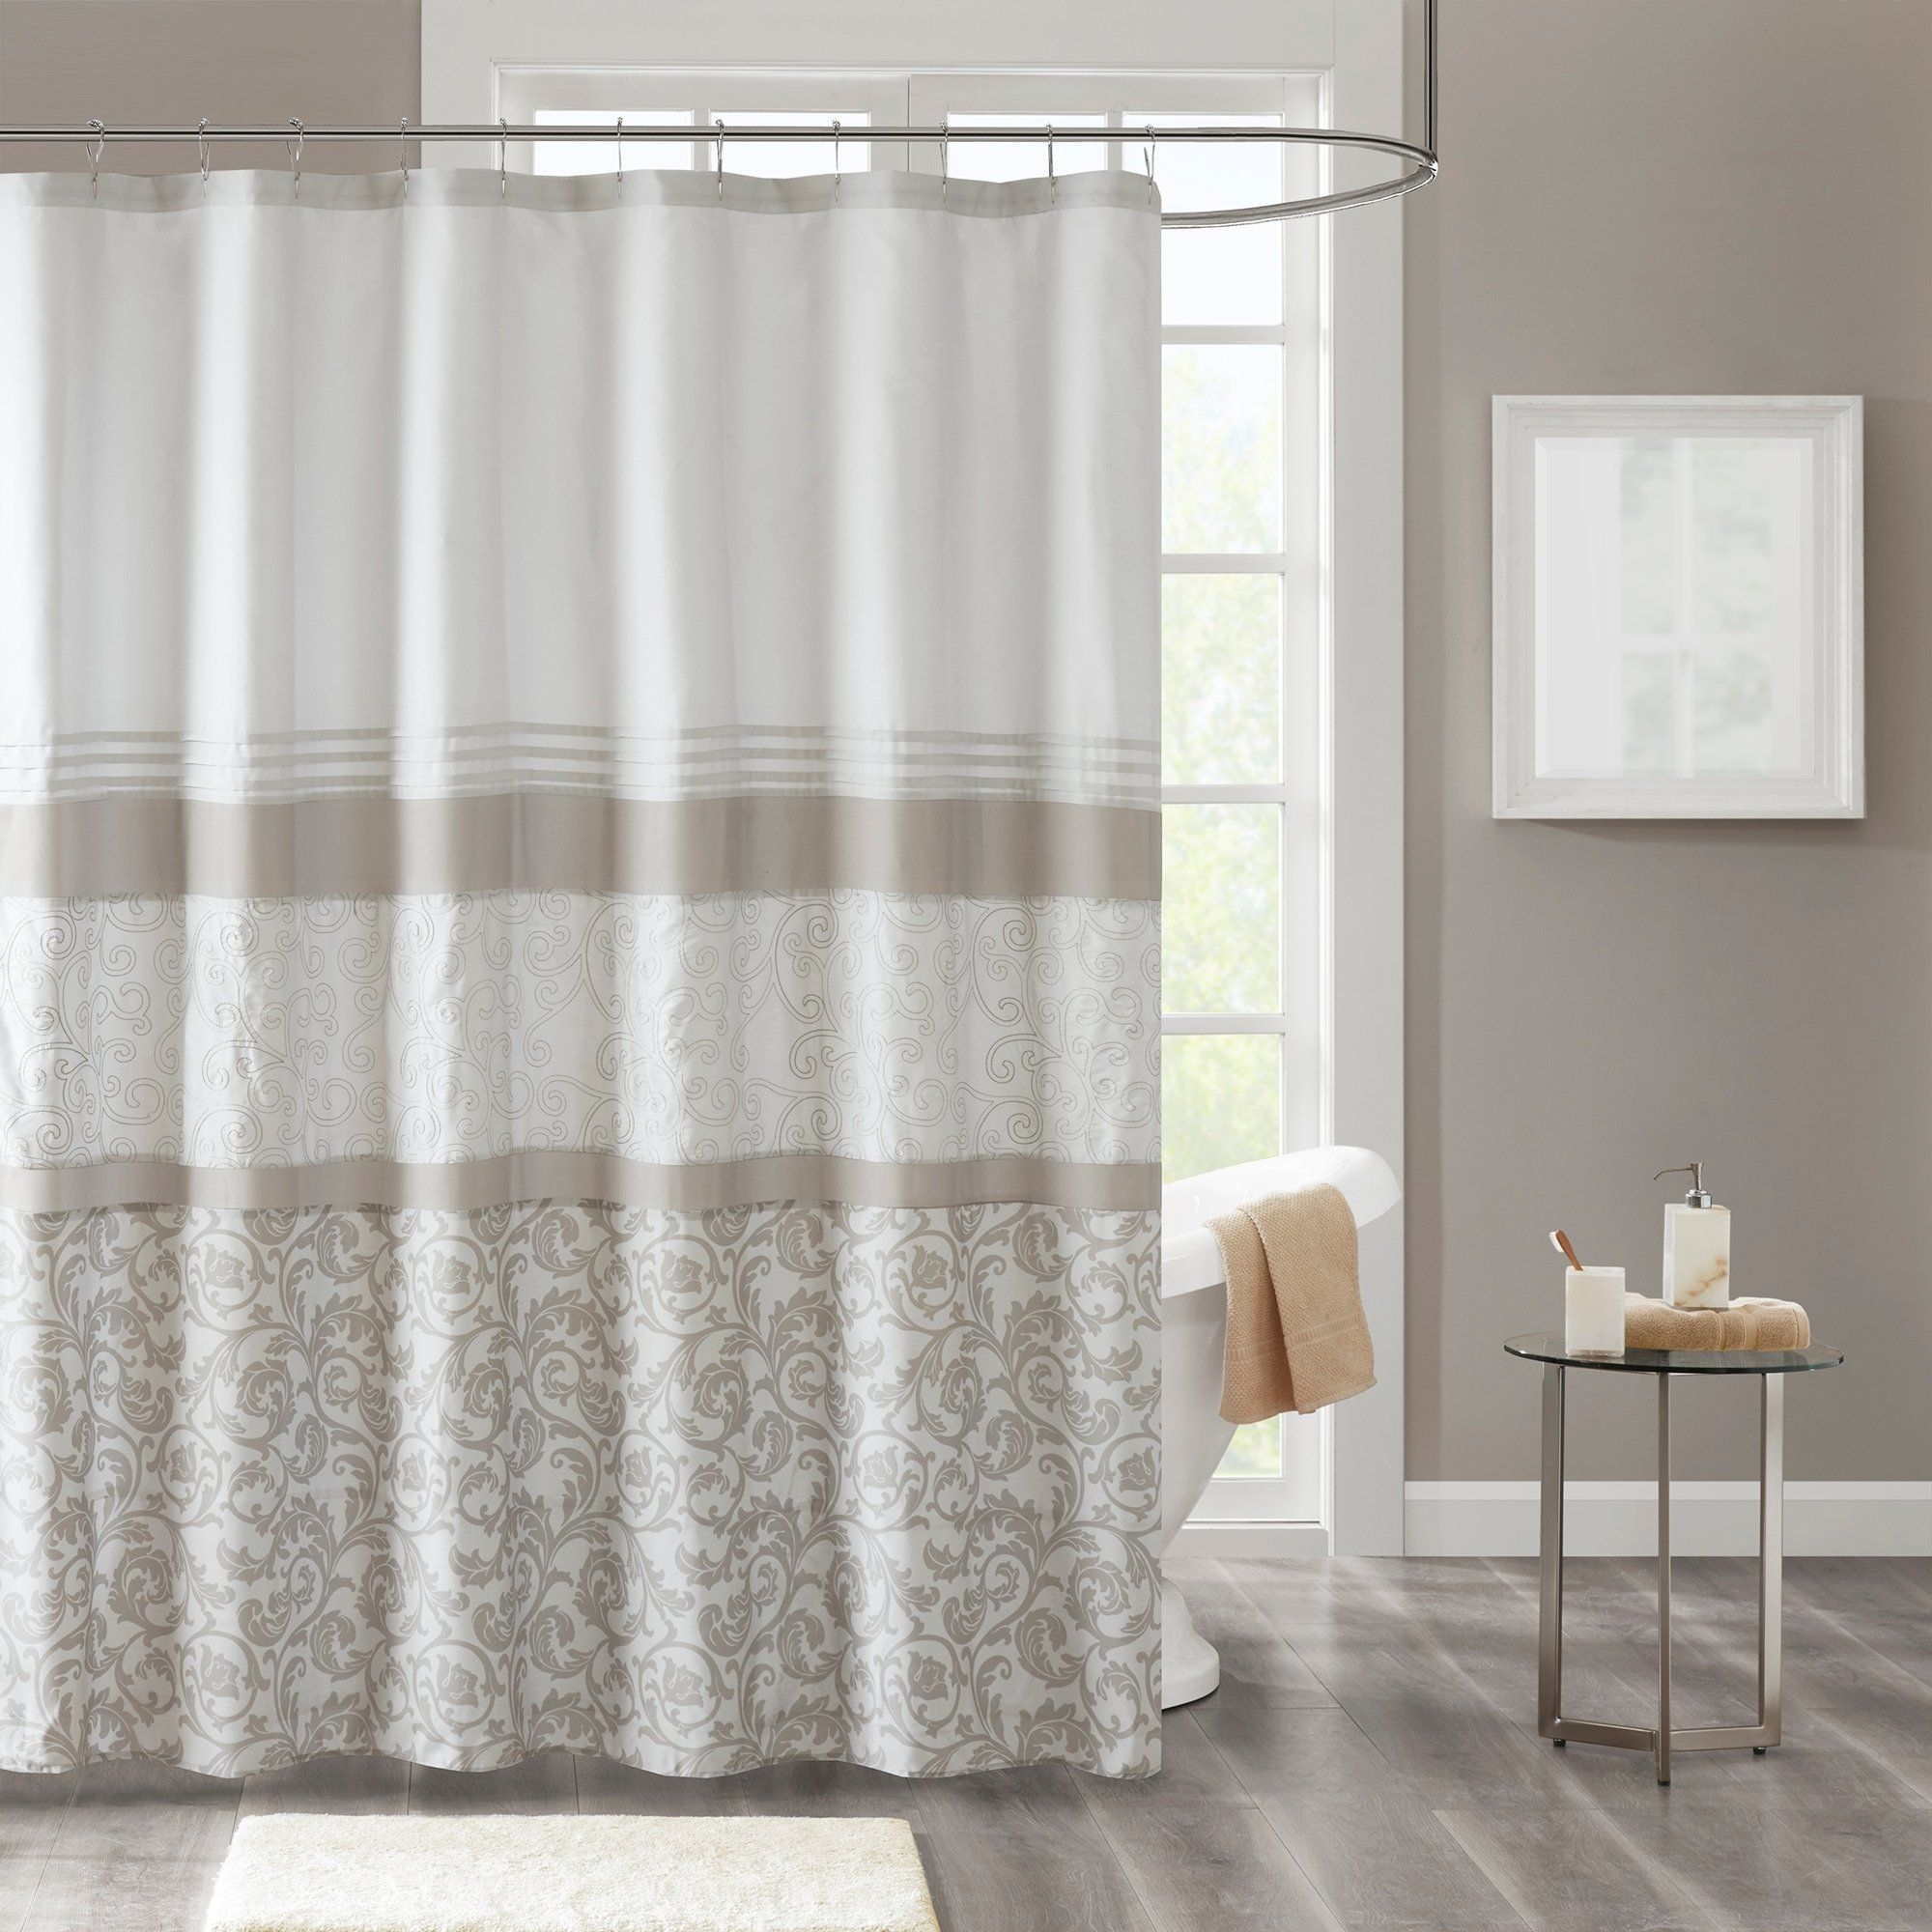 510 Design Lynda Neutral Printed And Embroidered Shower Curtain